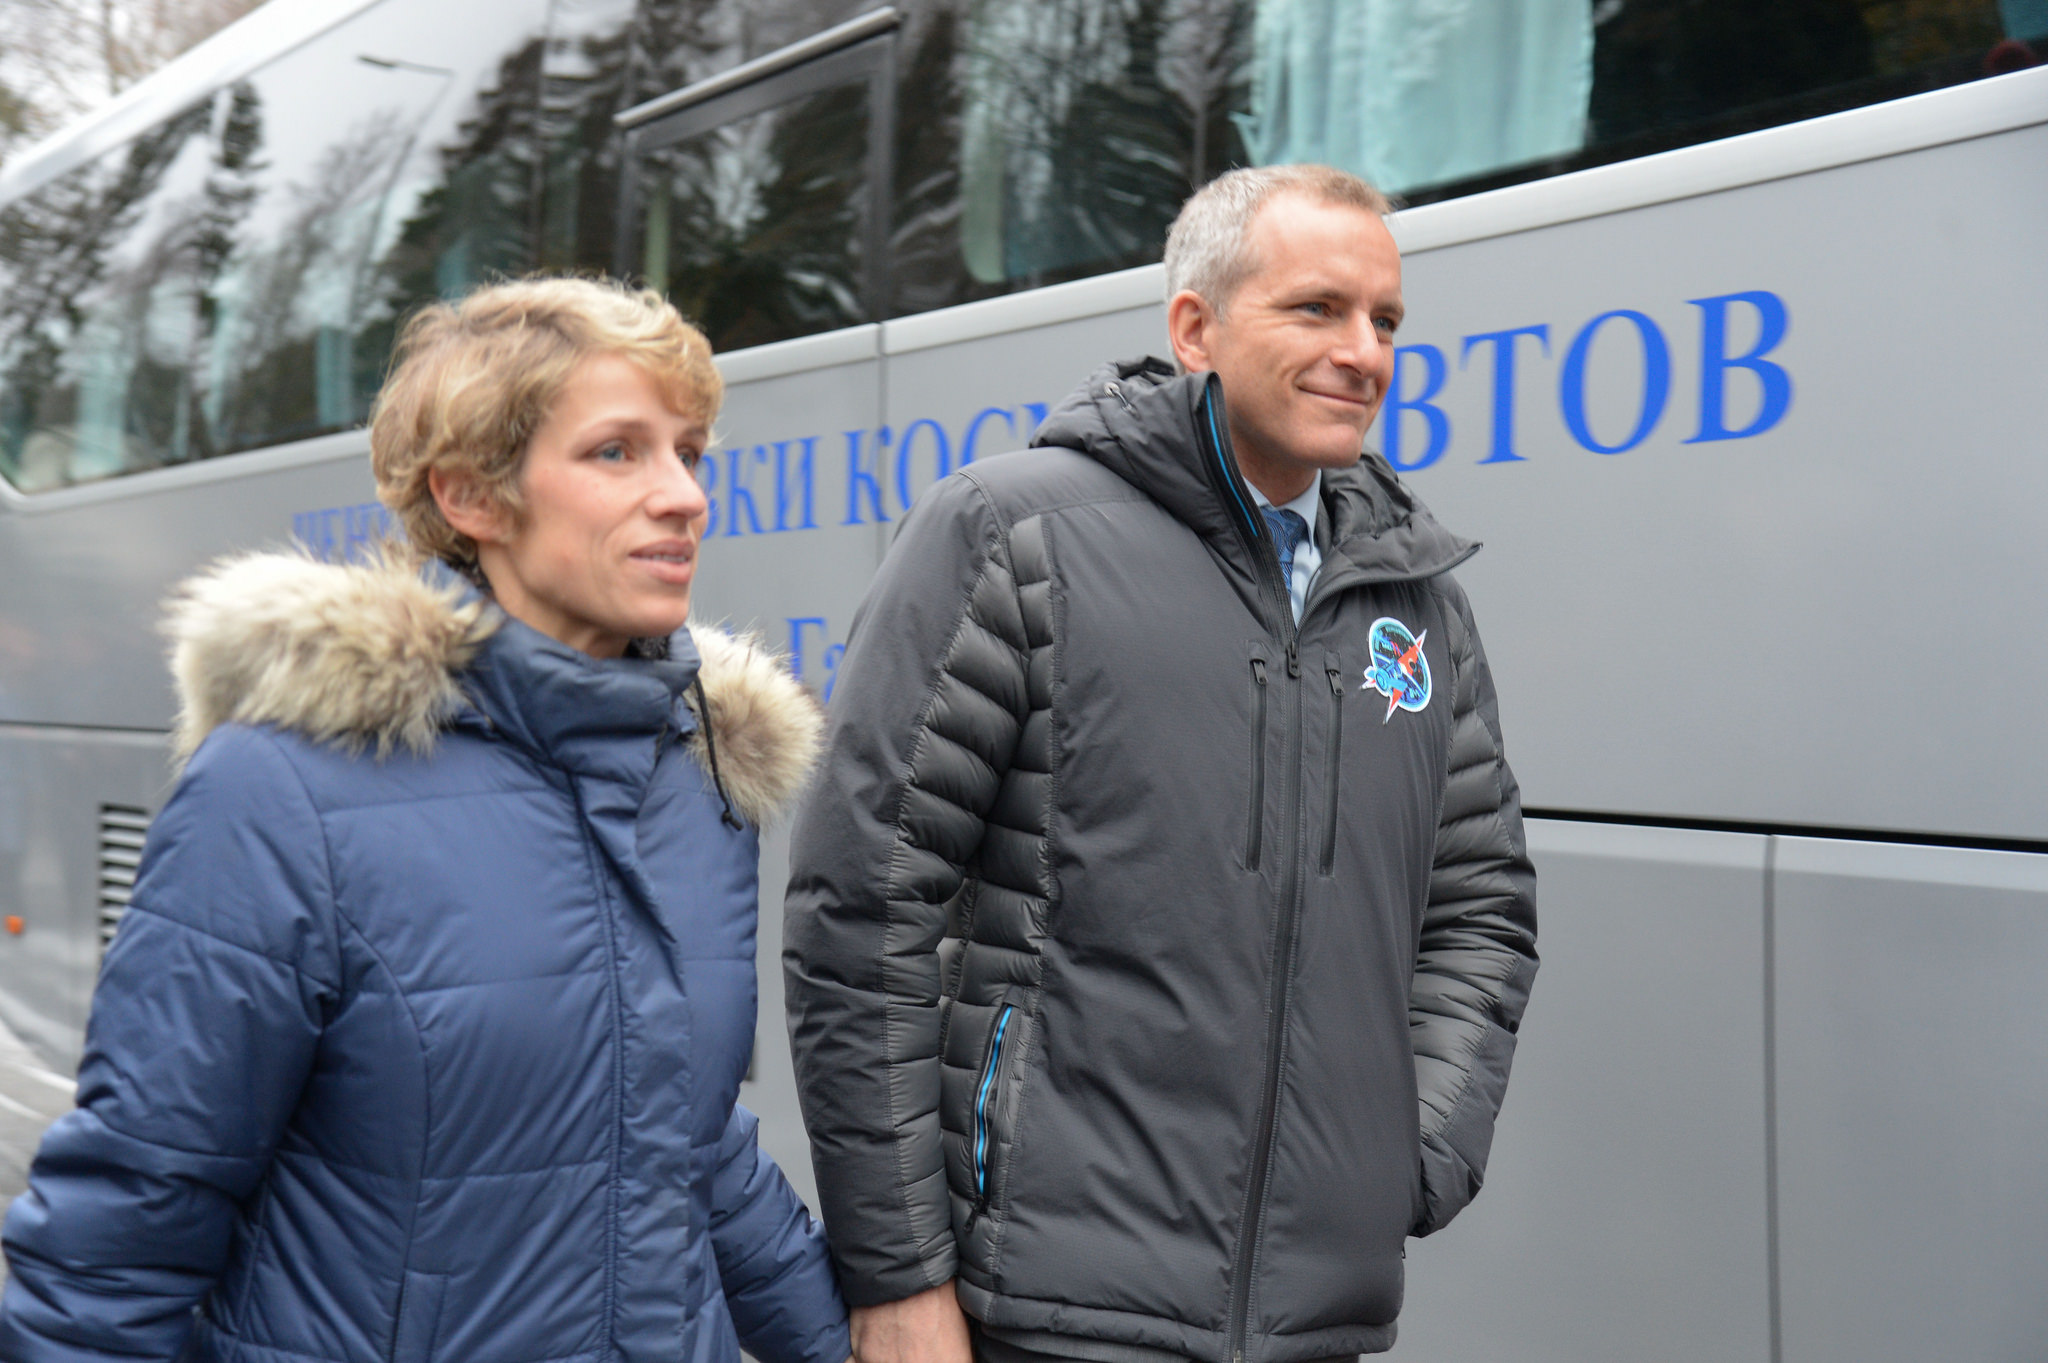 At the Gagarin Cosmonaut Training Center in Star City, Russia, Expedition 58 crew member David Saint-Jacques of the Canadian Space Agency (right) walks with his wife, Veronique, to a waiting bus Nov. 19 that will take him and his crewmates to a nearby airfield for a flight to their launch site in Baikonur, Kazakhstan. Saint-Jacques, Anne McClain of NASA and Oleg Kononenko of Roscosmos will launch Dec. 3 on the Soyuz MS-11 spacecraft from the Baikonur Cosmodrome in Kazakhstan for a six-and-a-half month mission on the International Space Station